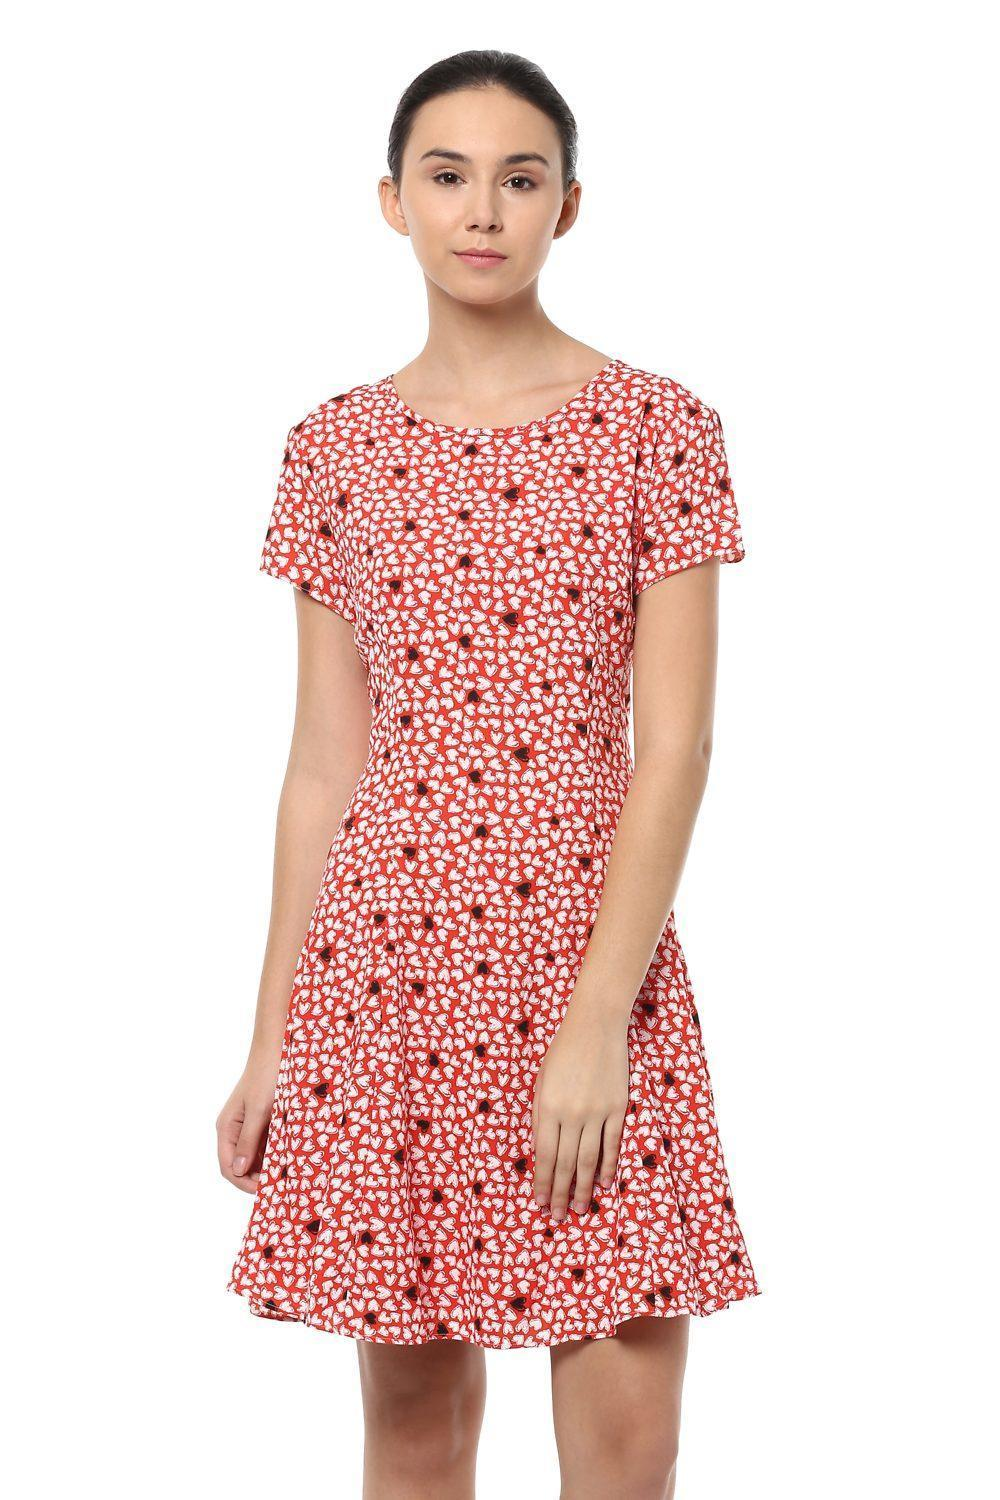 830487be17 Solly Dresses, Allen Solly Red Dress for Women at Allensolly.com